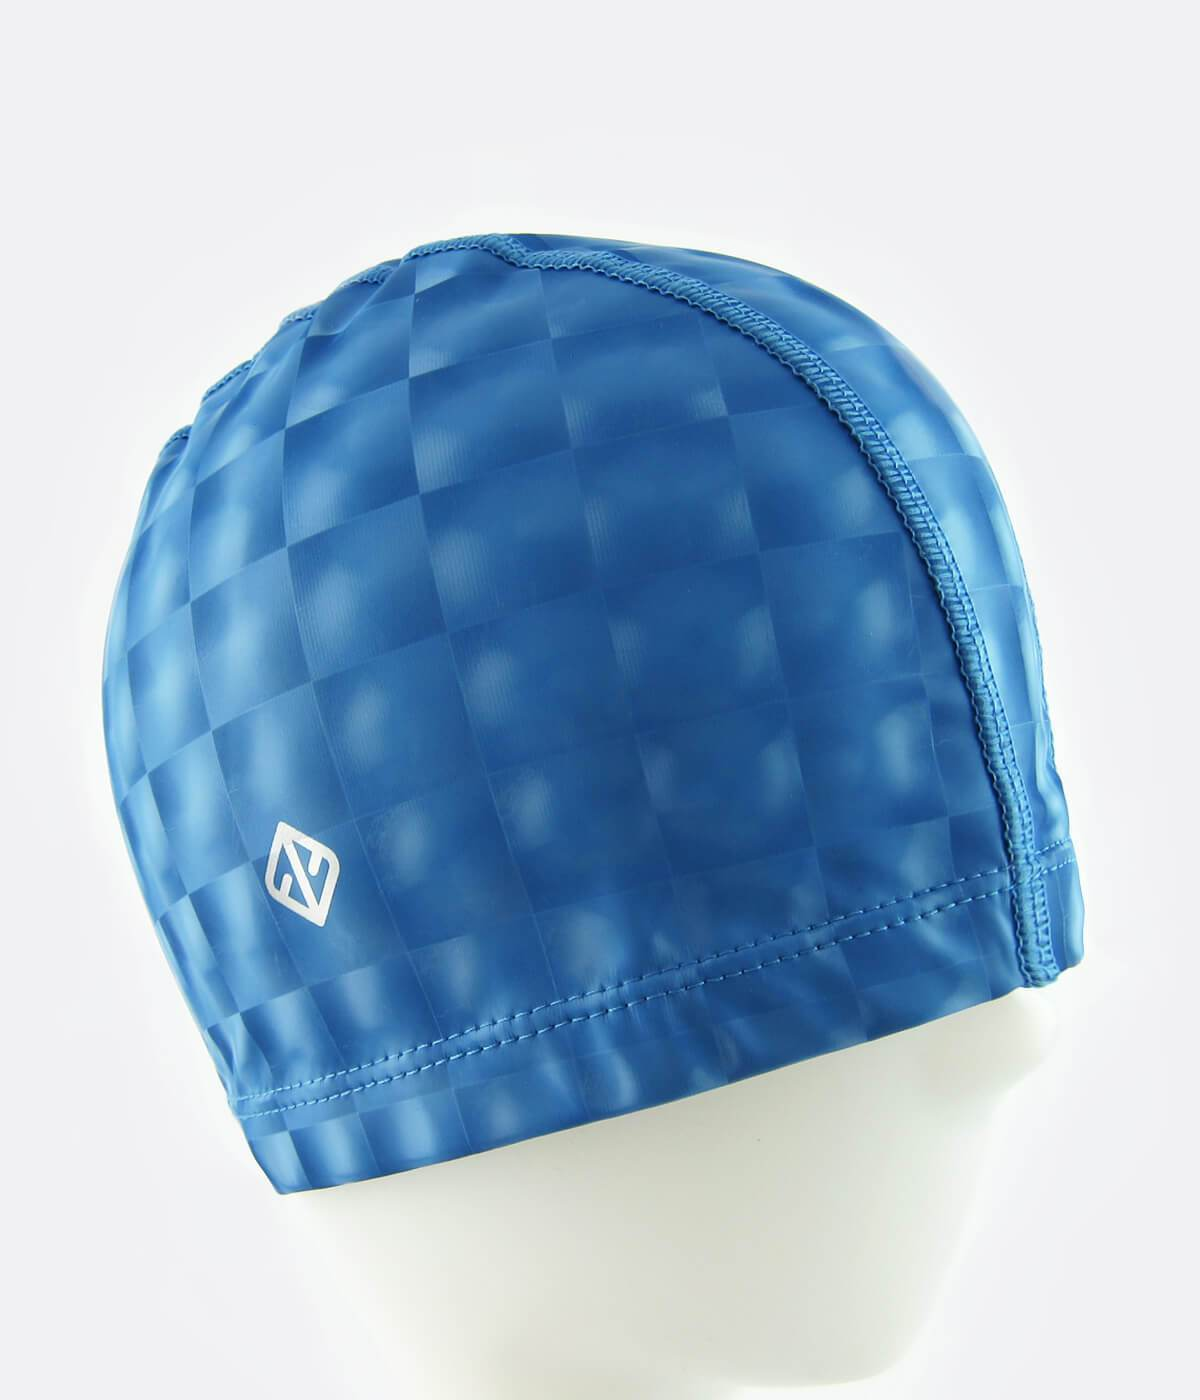 FUNFIT PU Coated Swimming Cap in 3D Lenticular Blue